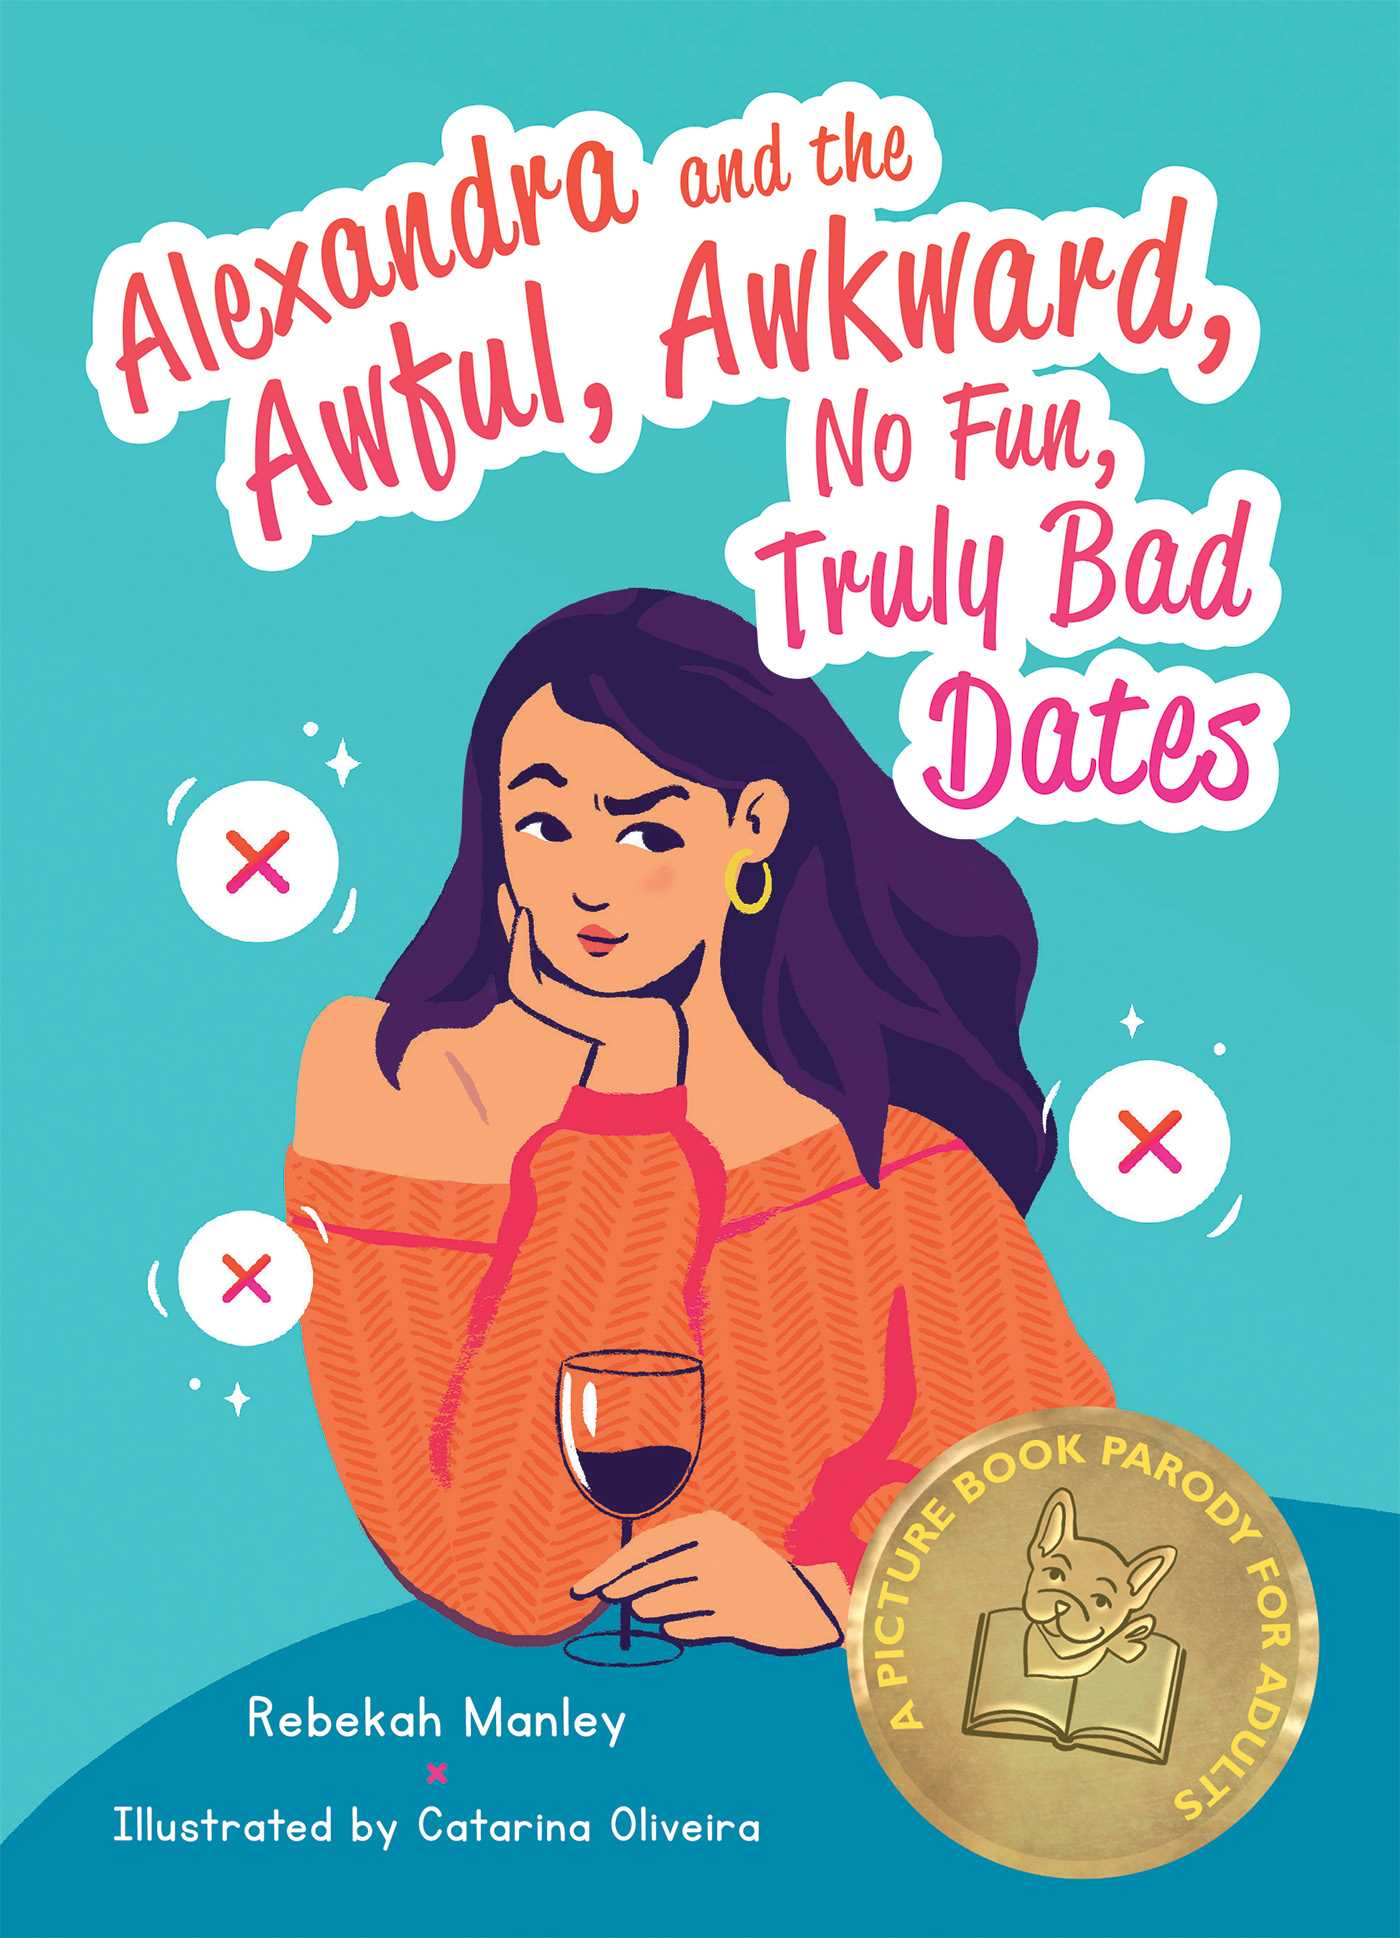 Alexandra and the Awful, Awkward, No Fun, Truly Bad Dates by Rebekah Manley